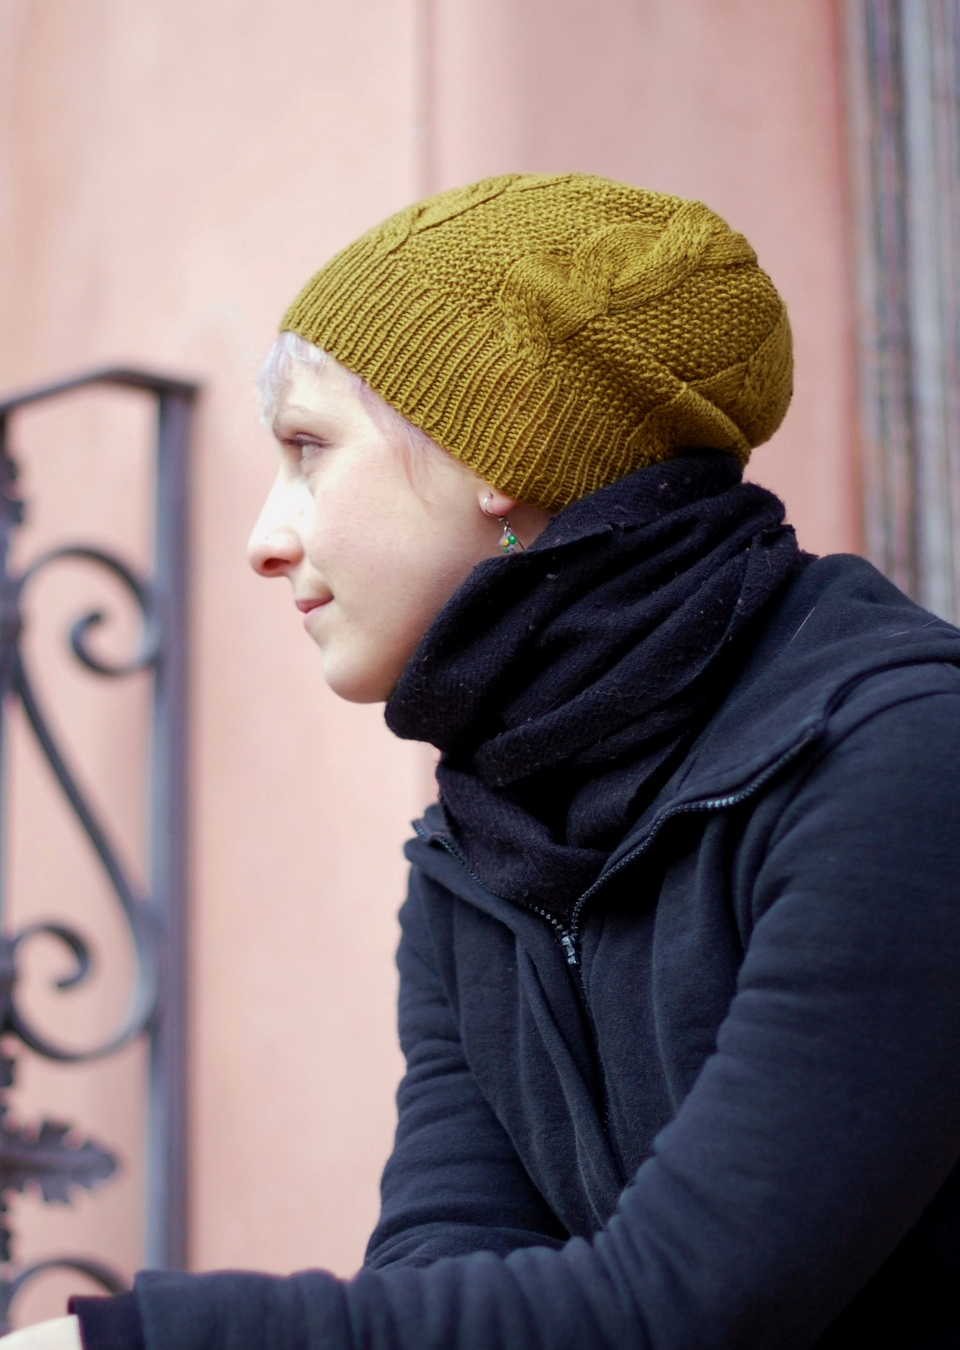 Slable slouchy cable Hat knitting pattern